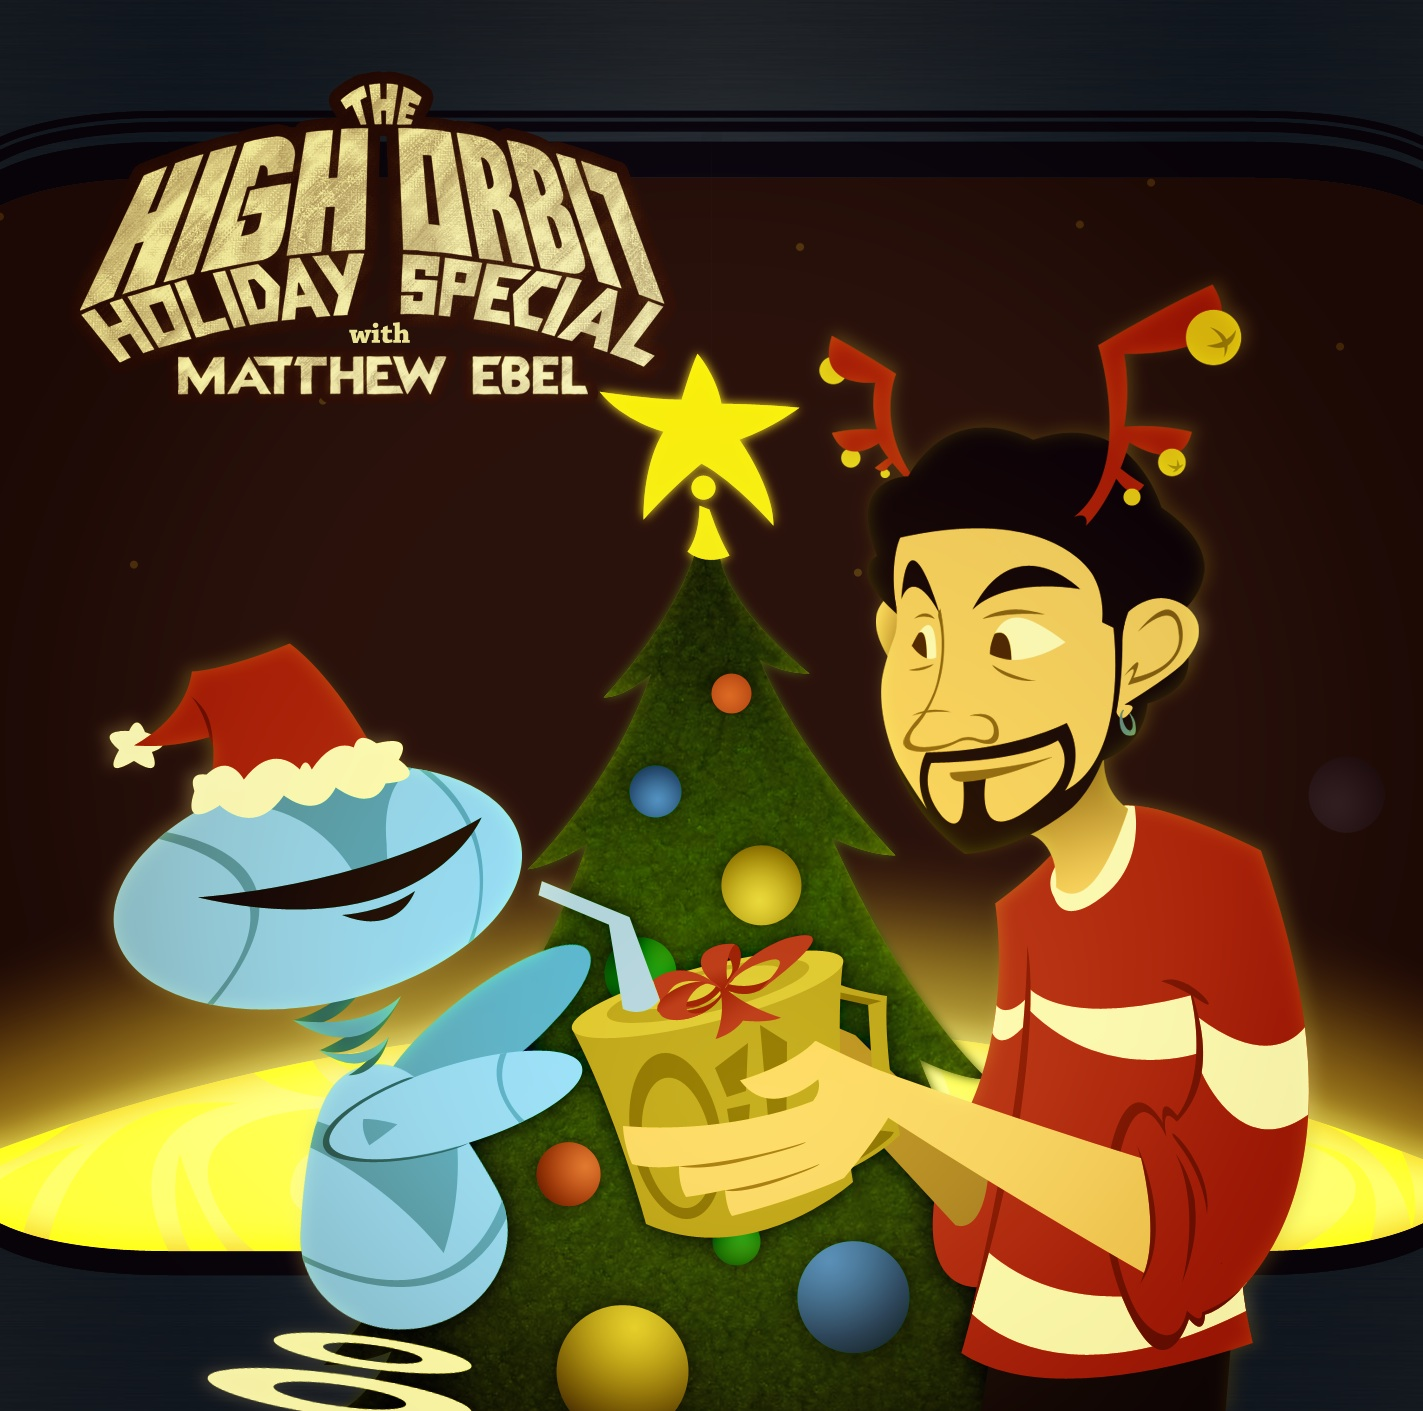 The High Orbit Holiday Special